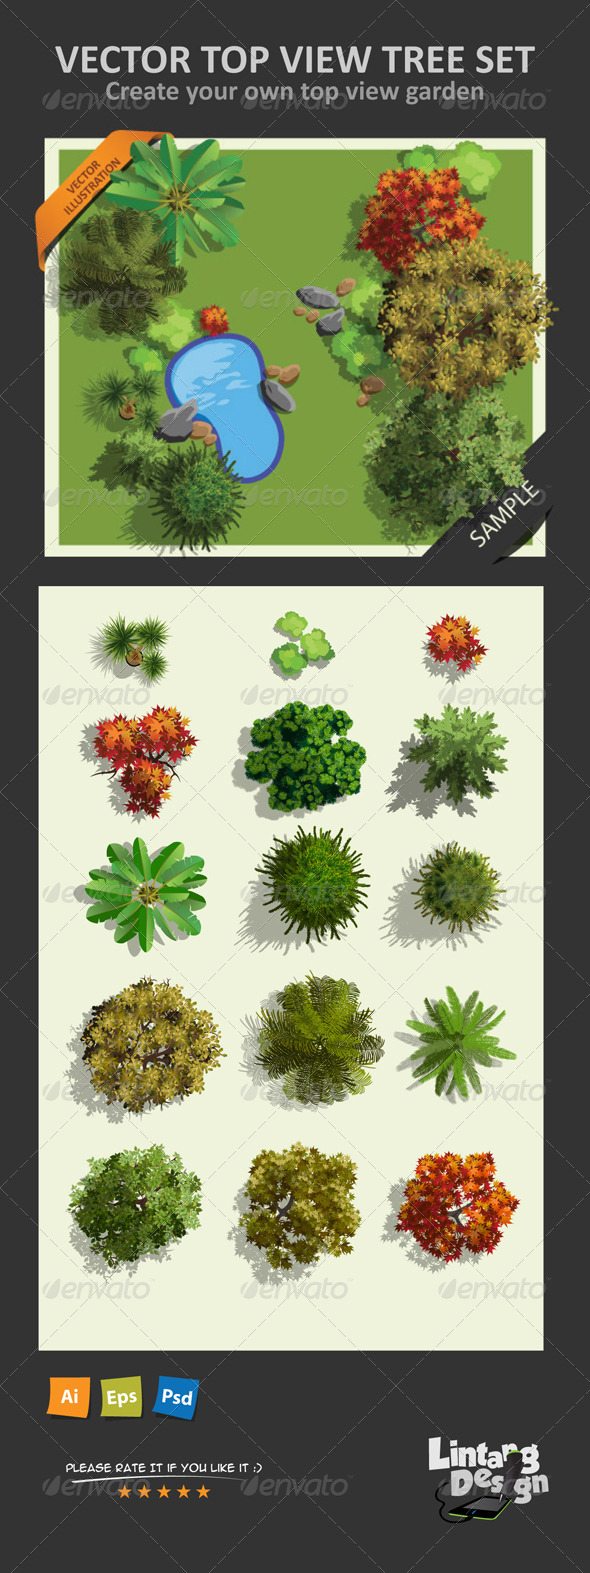 Top View Tree Set 01 By Lintangdesigns Graphicriver